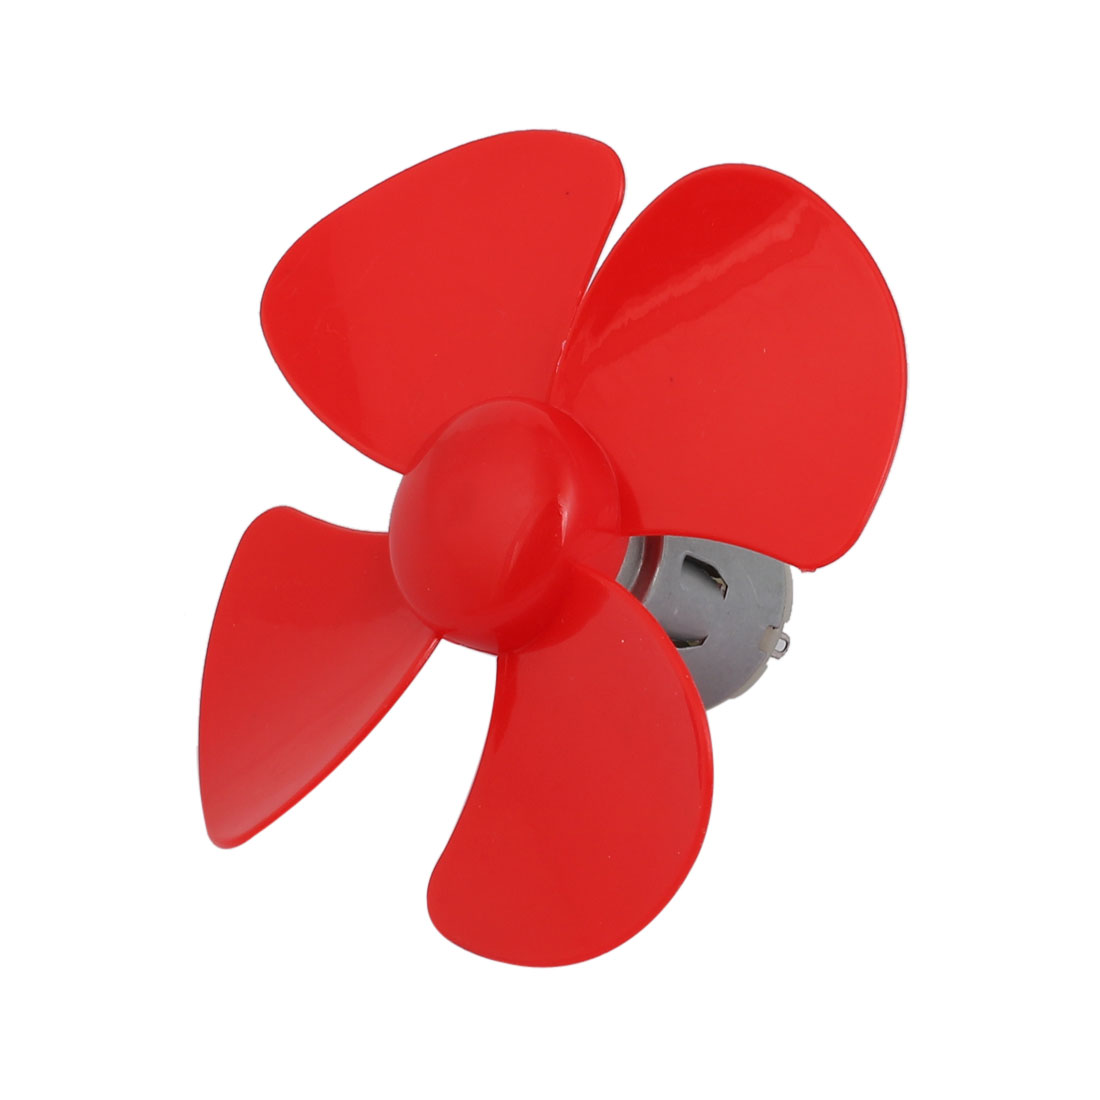 DC 12V 0.03A 1500-7000RPM Motor 4 Vanes 100mm Rotating Dia Propeller Red for RC Aircraft